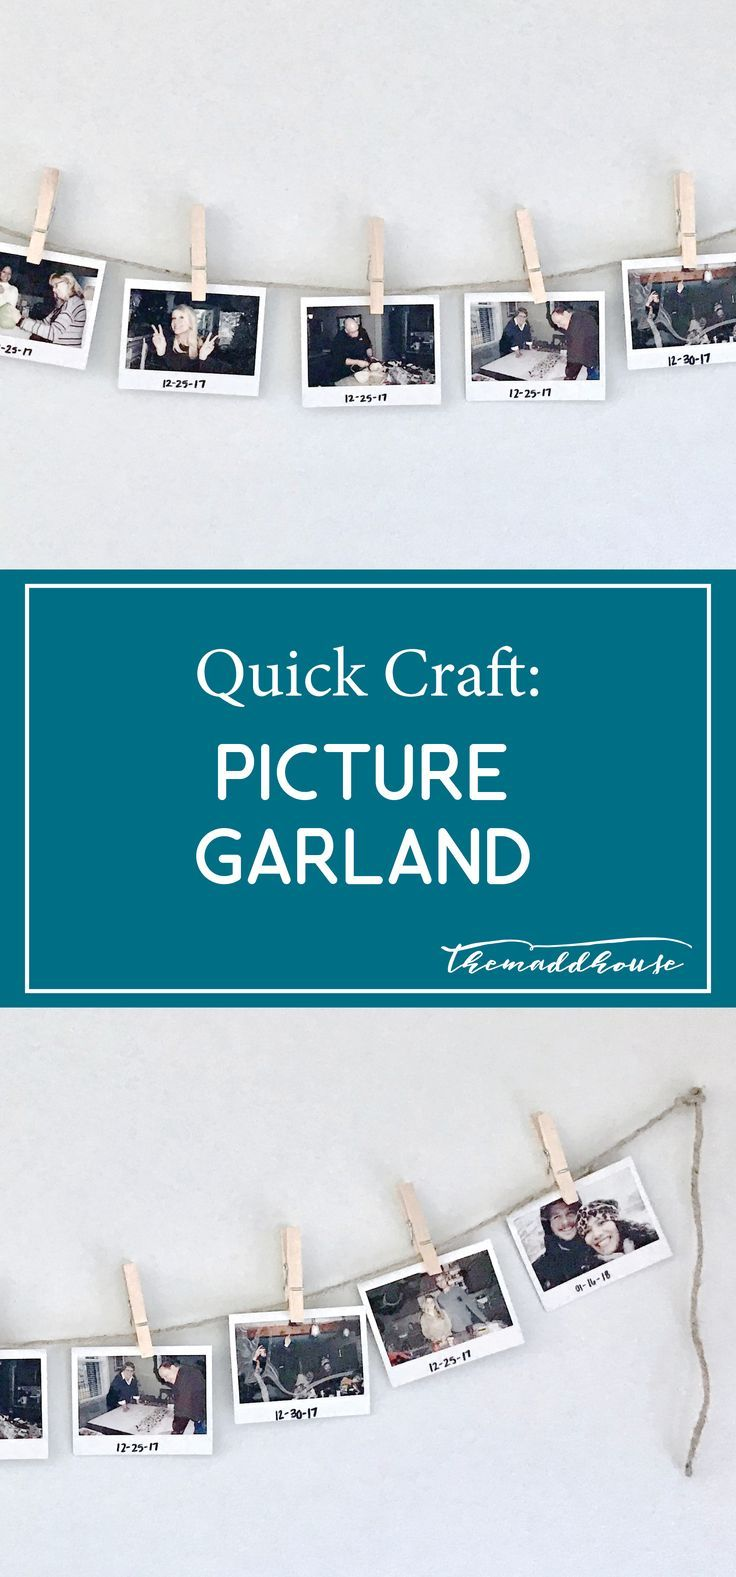 Quick Craft: Picture Garland Check our this quick and easy DIY project!